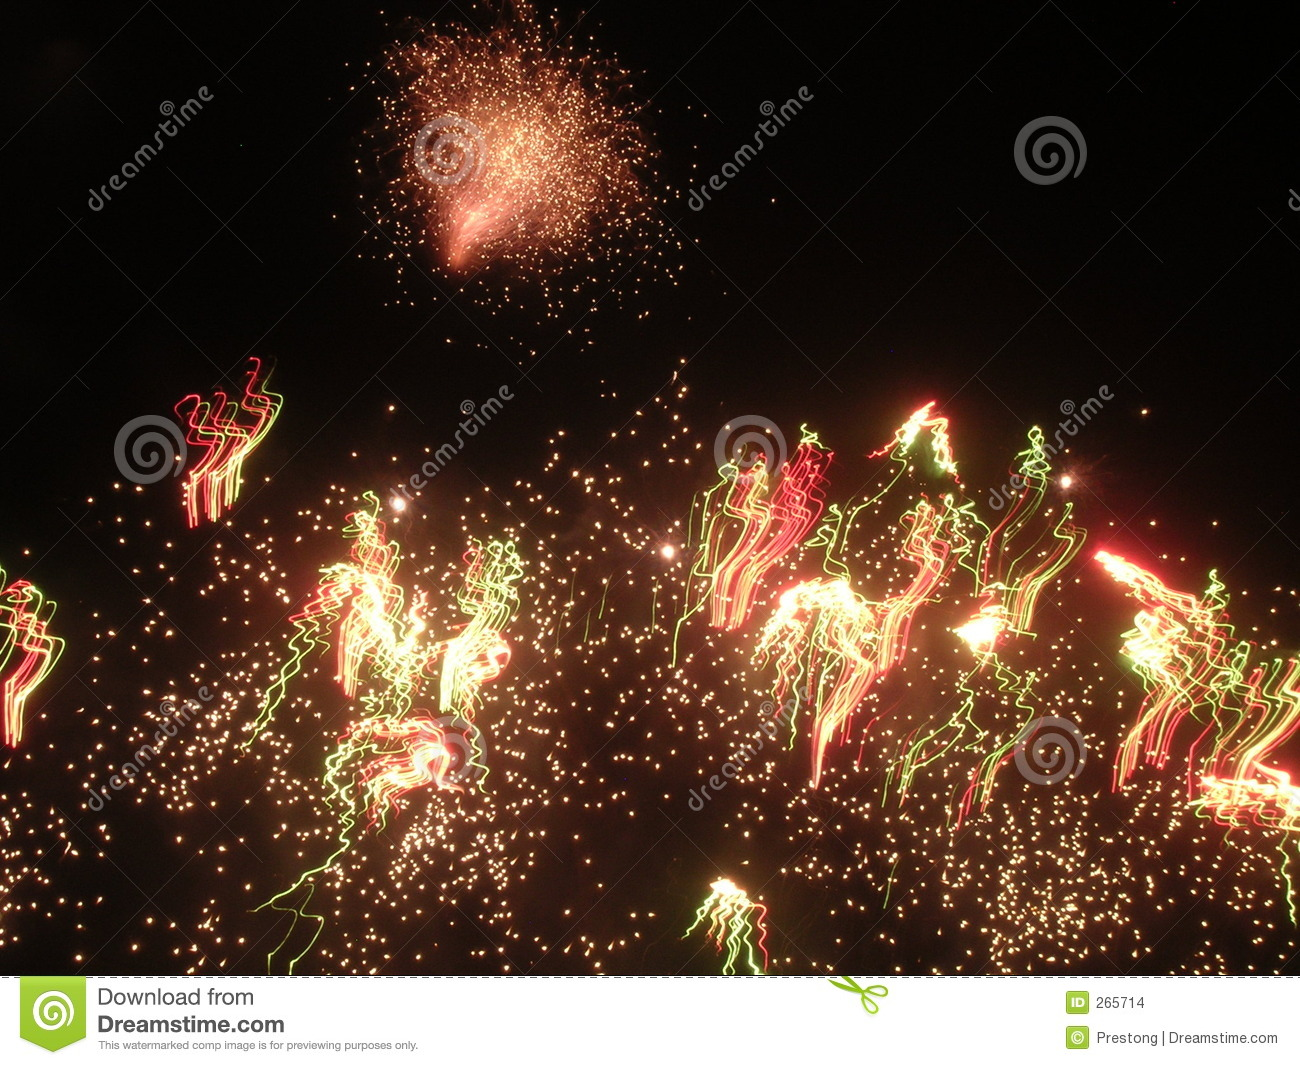 Download Fireworks Exploding At Night Stock Photo - Image of sparks, entertainment: 265714